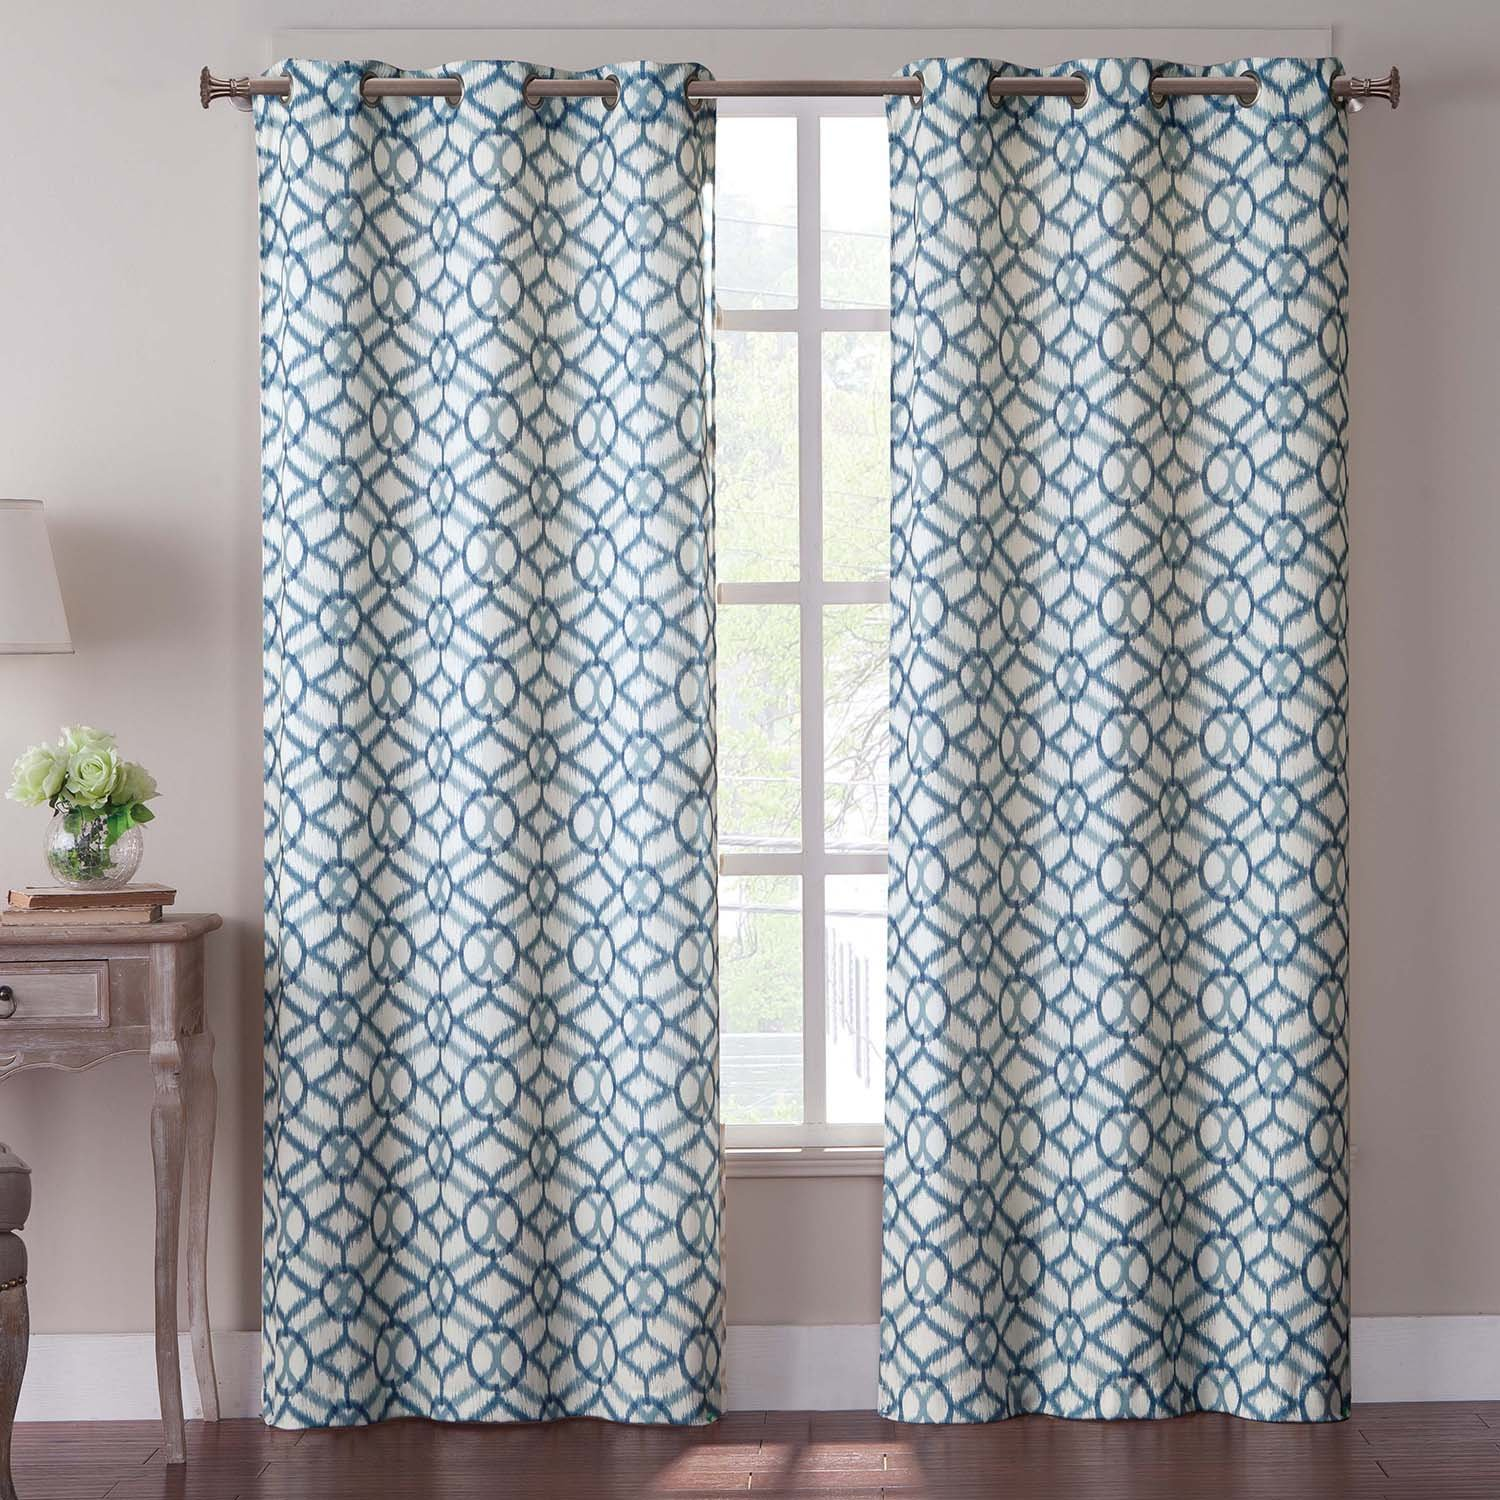 Turquoise curtain panels - Amazon Com Vcny Tangiers Grommet Panel Pair 40 By 84 Inch Blue Home Kitchen